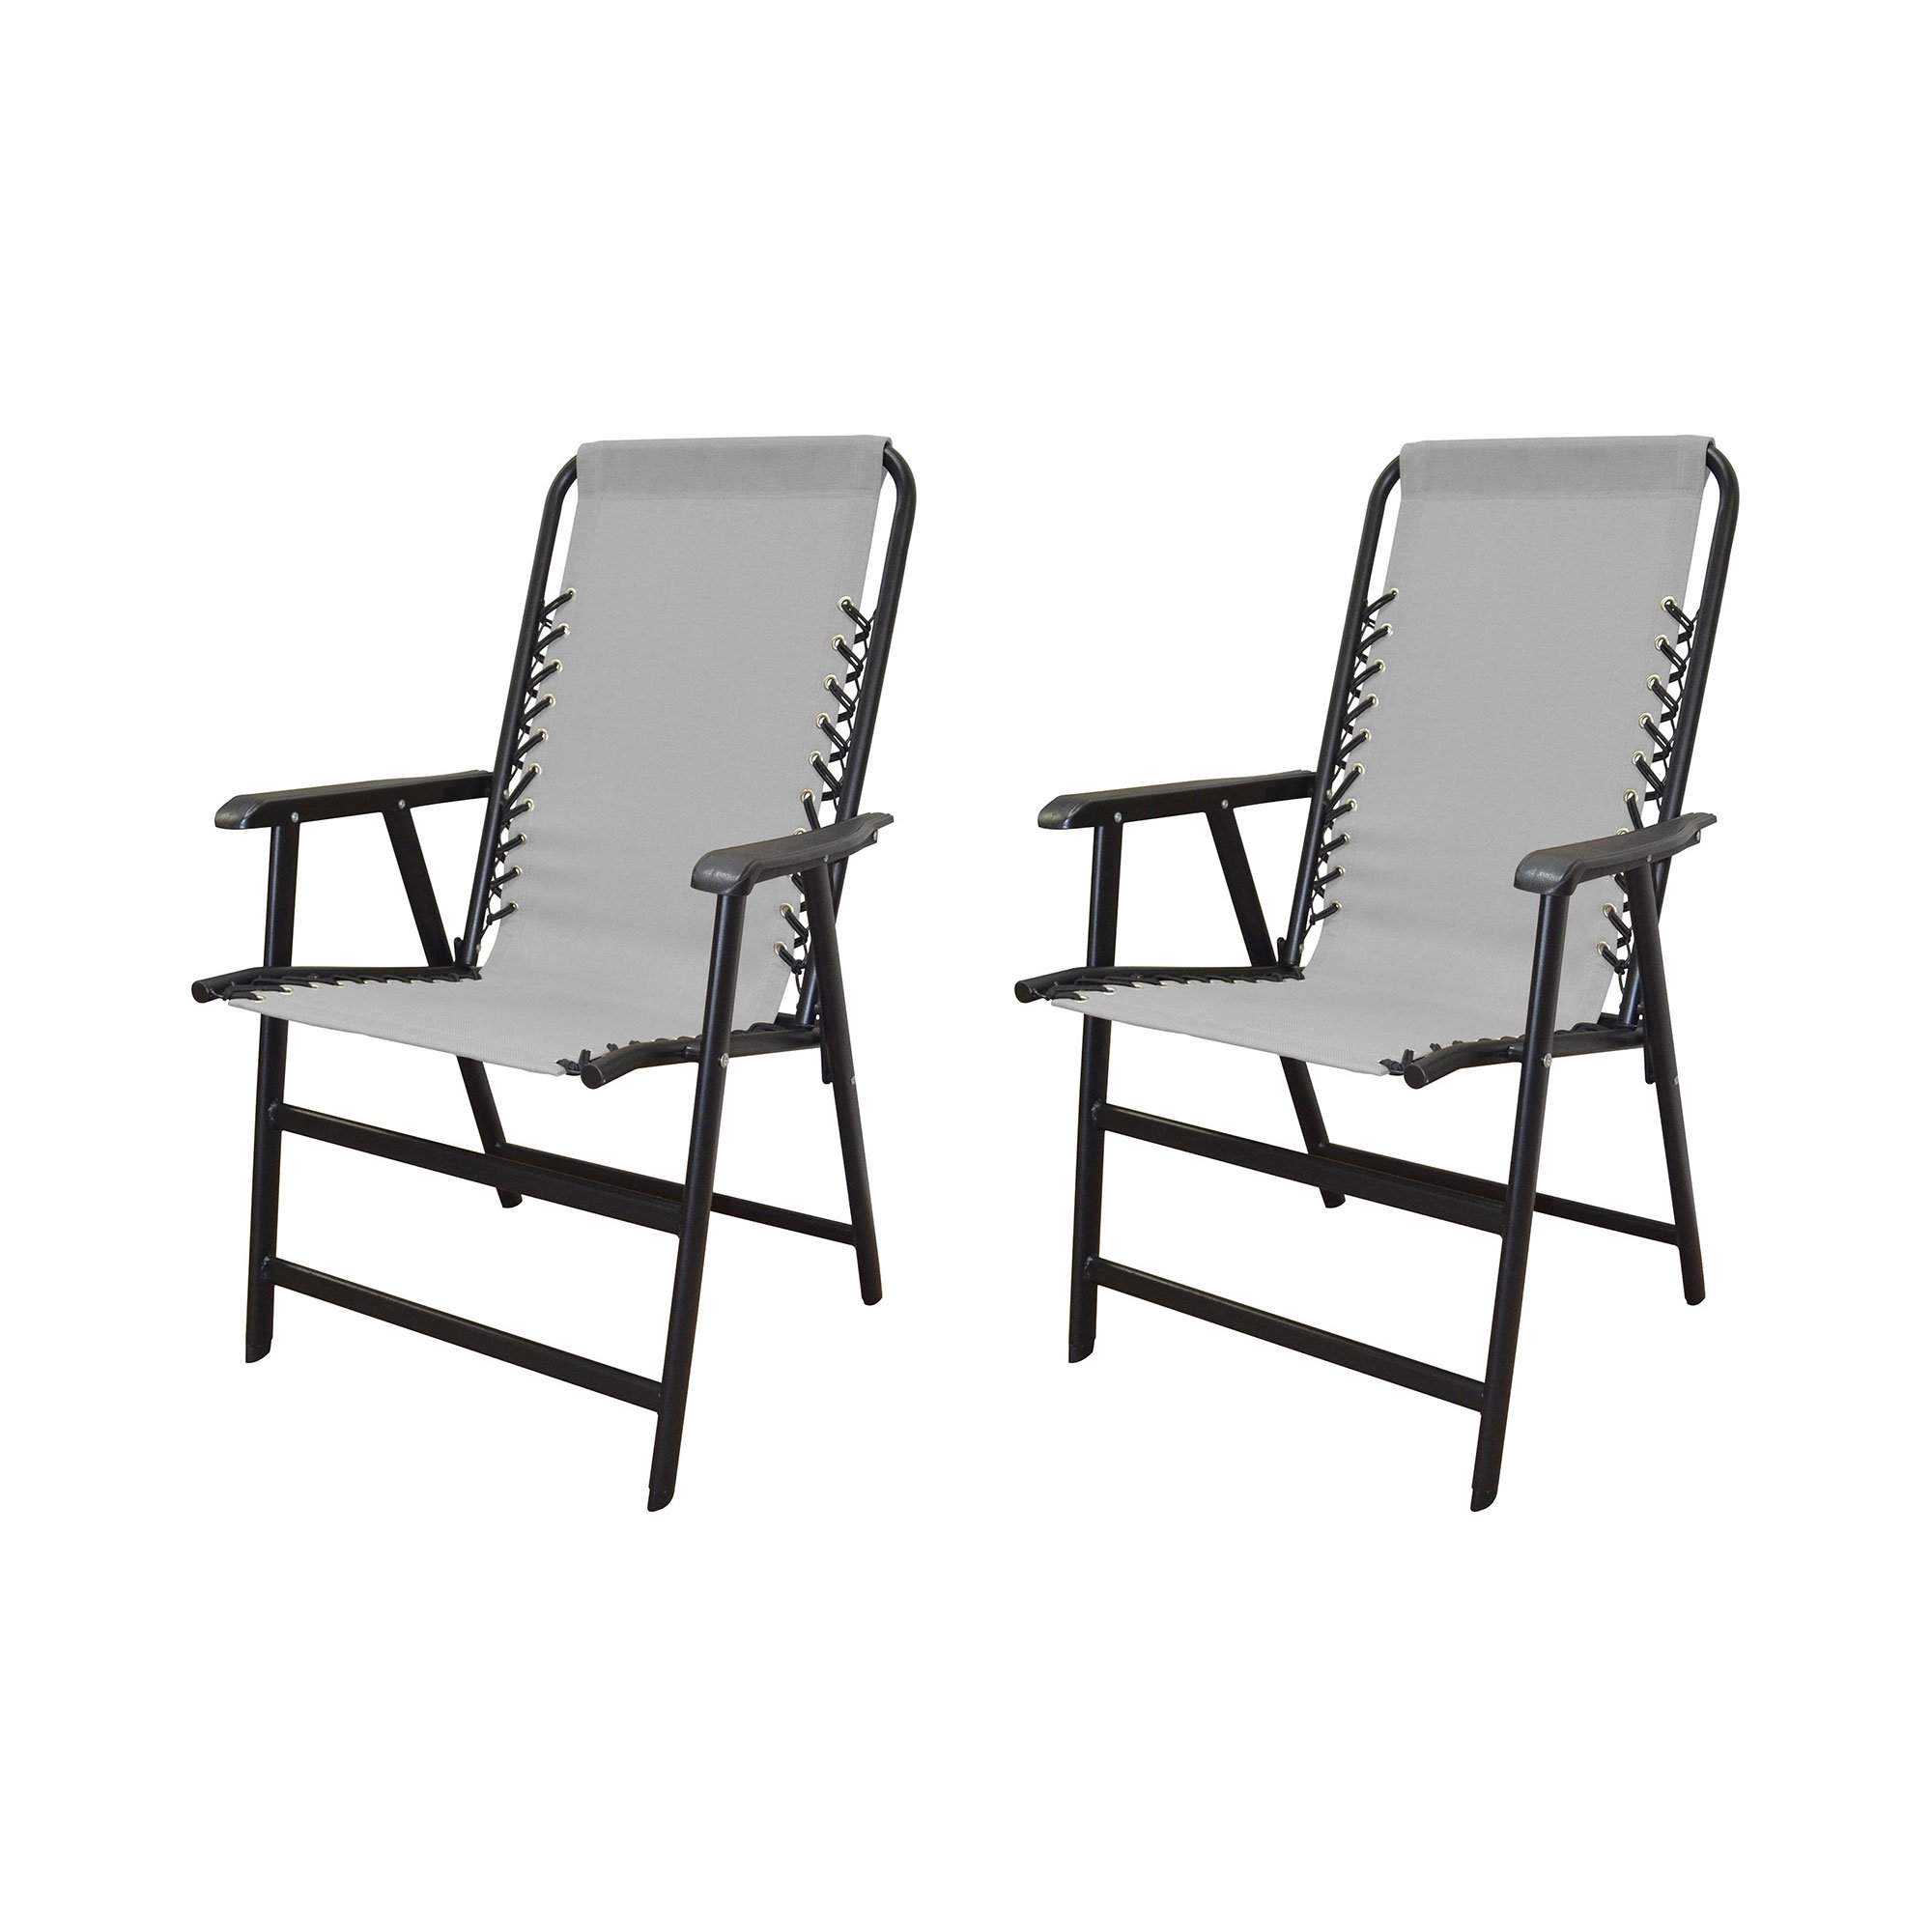 caravan canopy folding chairs dark blue chair covers infinity suspension steel frame deck gray 2 pack walmart com